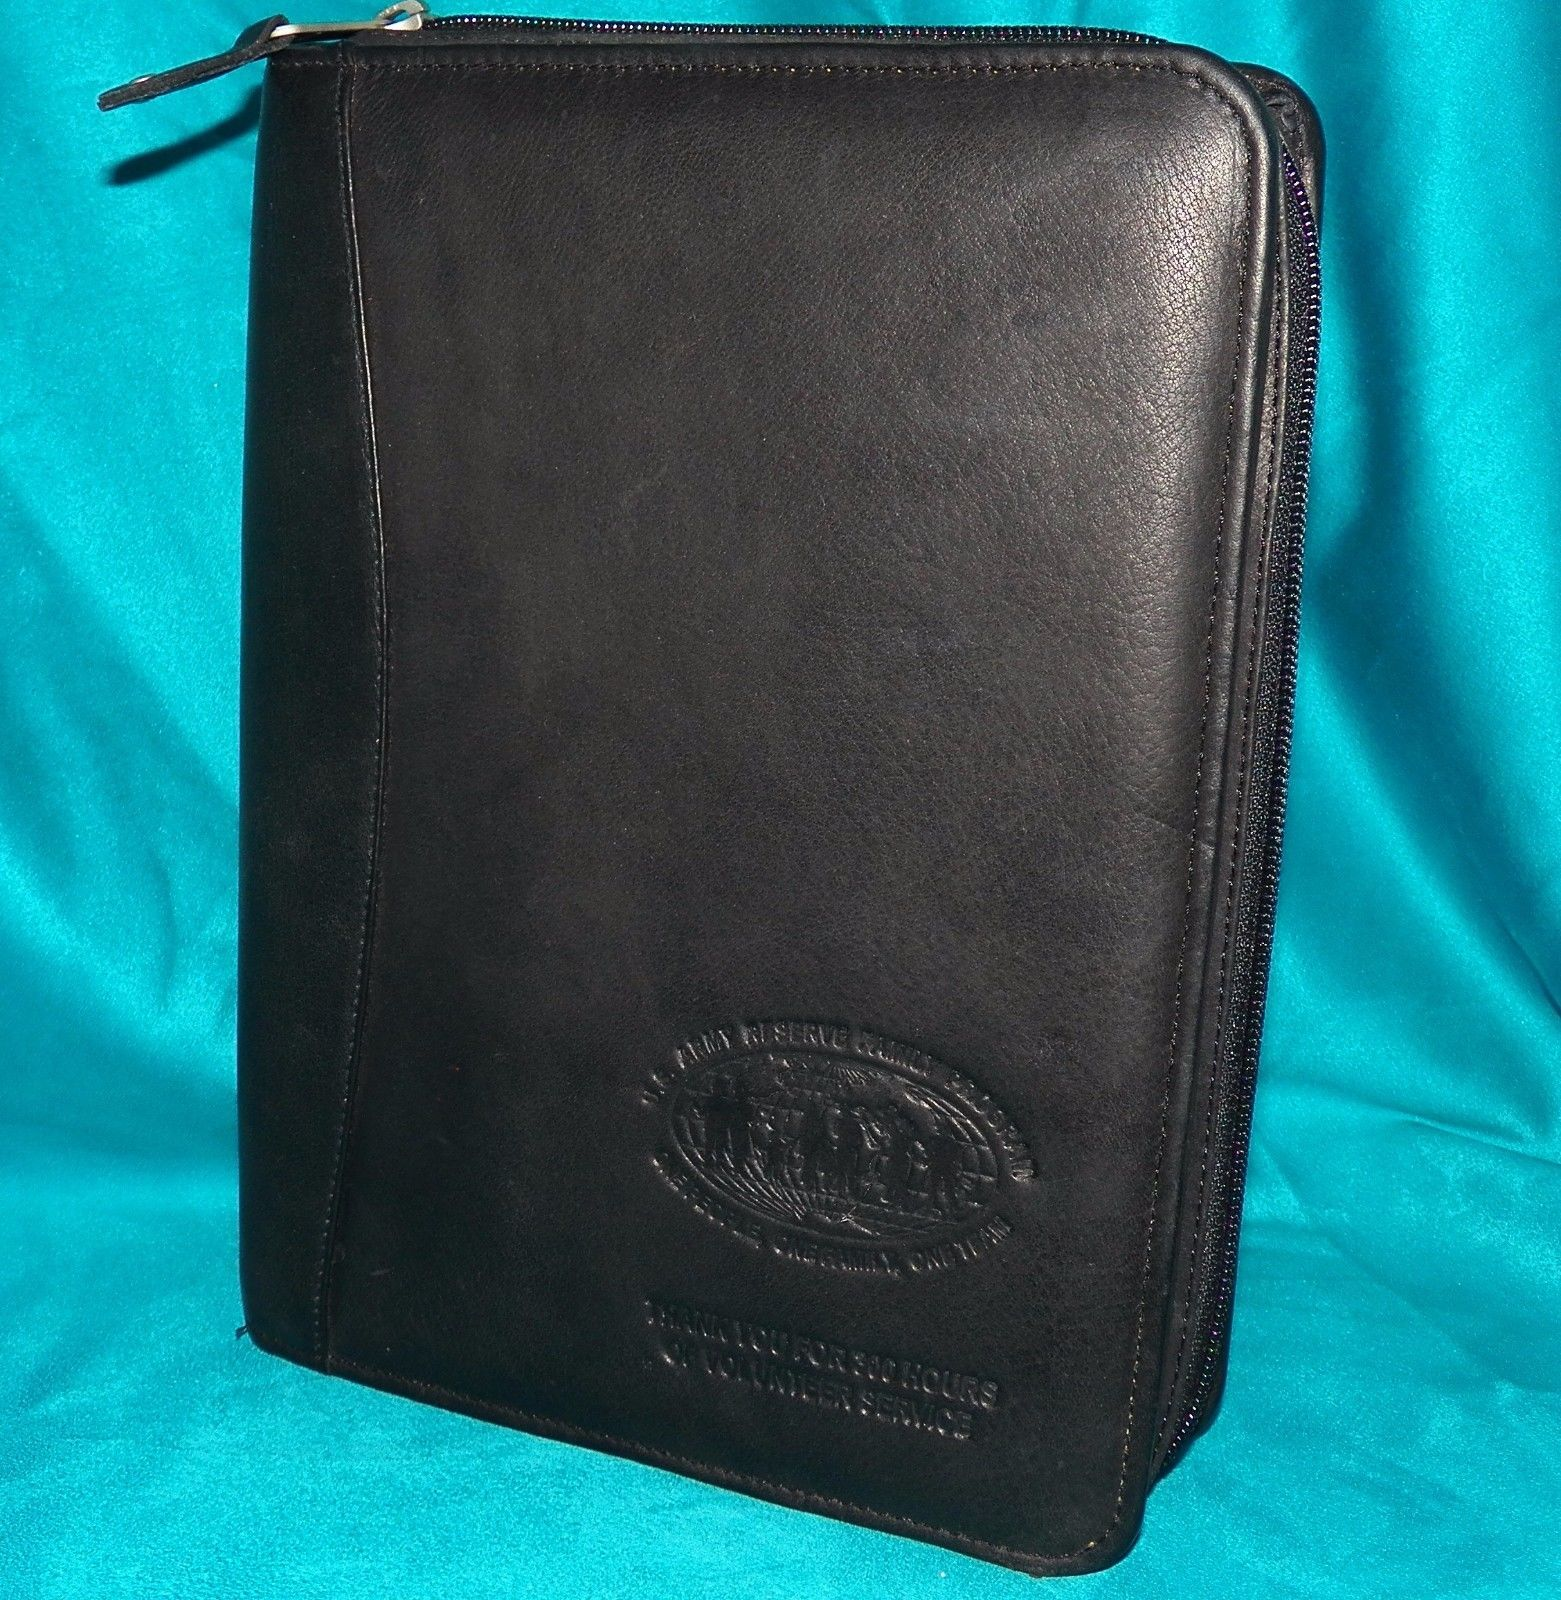 Canyon Outback Black Leather Agenda 7 Ring Planner Diary US Army Reserve 8 x 11